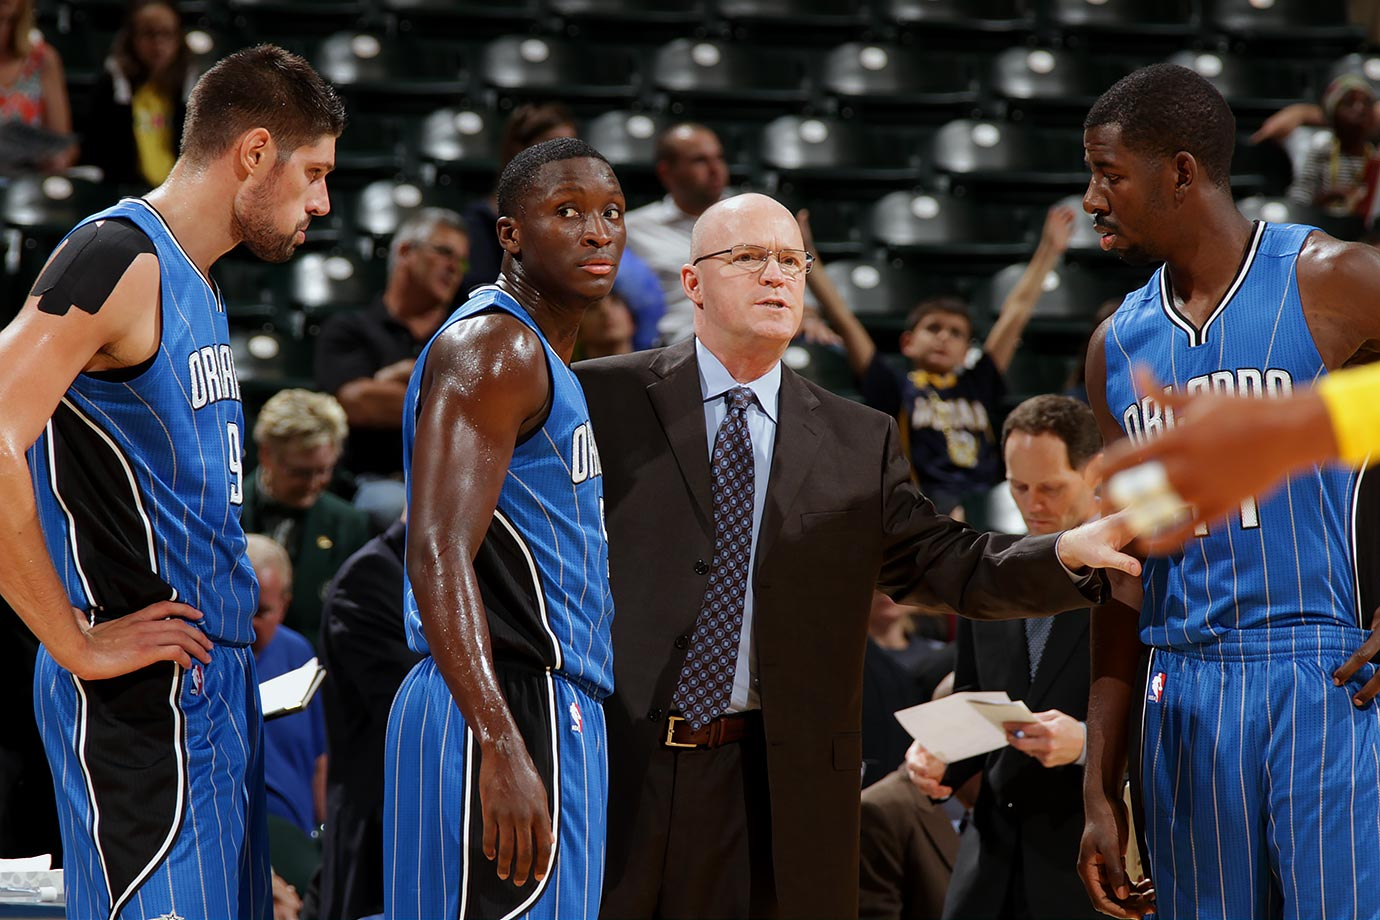 You only hire Scott Skiles so you can fire him in three                      years to give your team a huge morale boost.